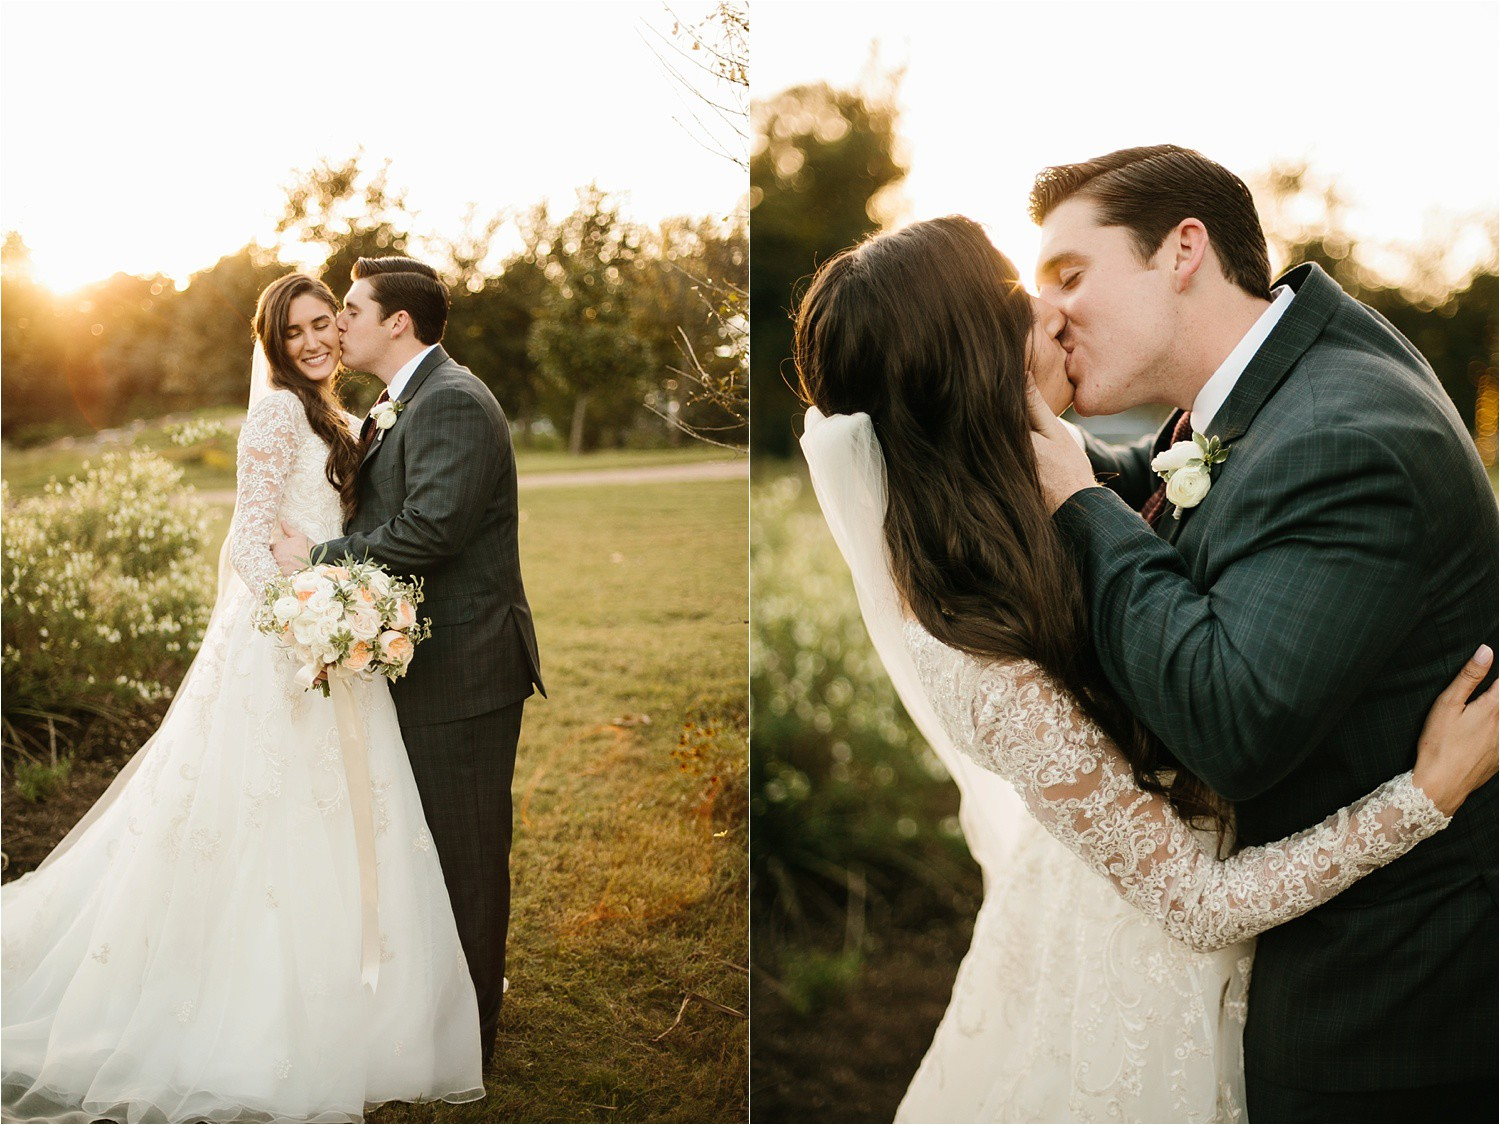 an-elegant-family-ranch-wedding-on-lake-worth-with-burgundy-apricot-and-blush-inspired-decorations-by-north-texas-wedding-photographer-rachel-meagan-photography-_-40